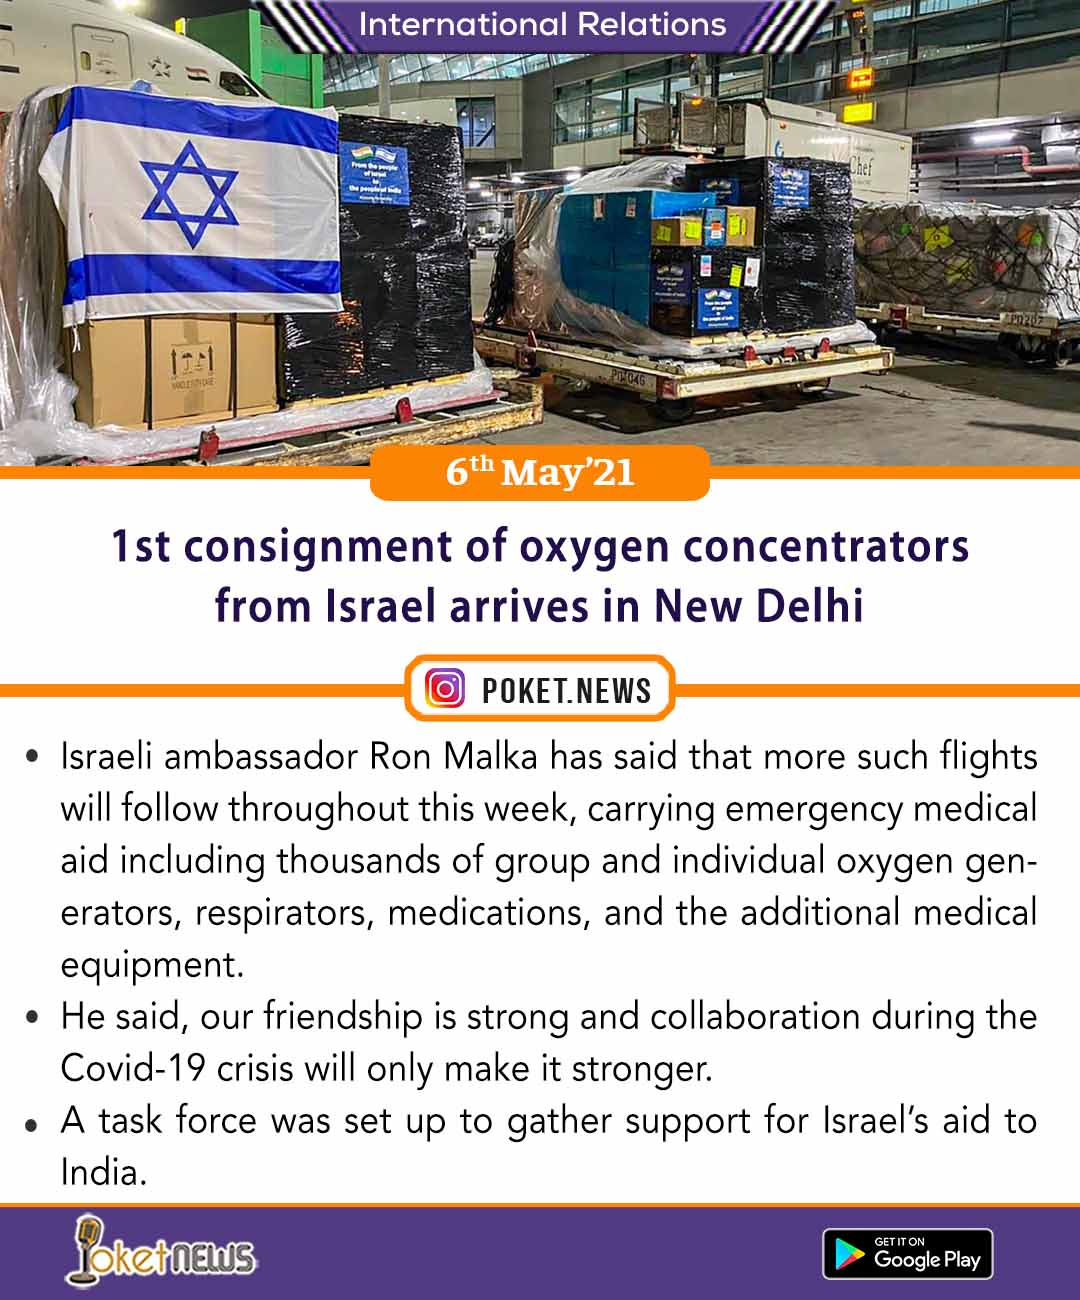 1st consignment of oxygen concentrators from Israel arrives in New Delhi